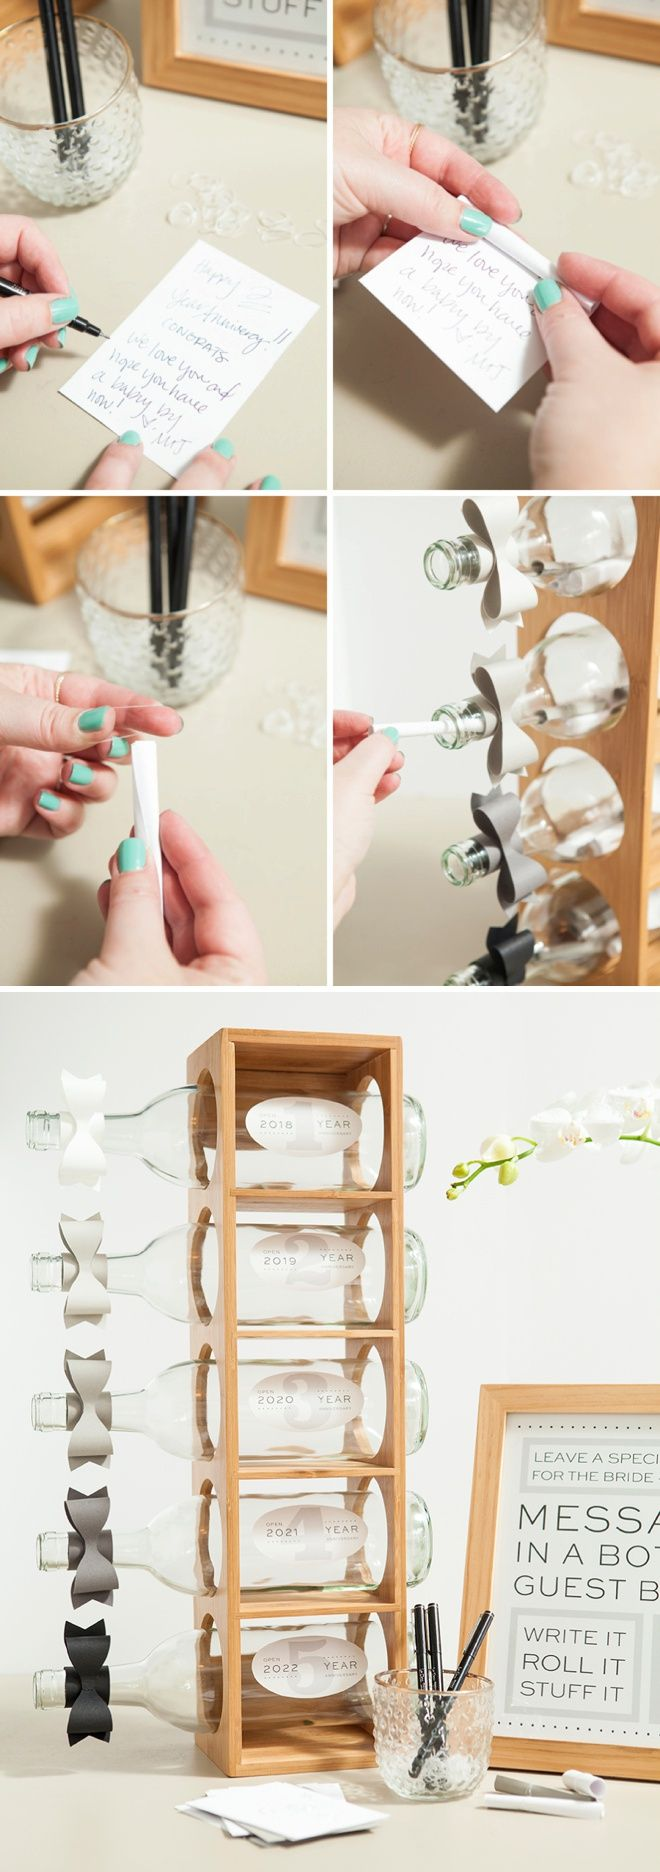 Scrapbook guest book ideas - Awesome Idea For A Diy Message In A Bottle Wedding Guest Book With Free Printables